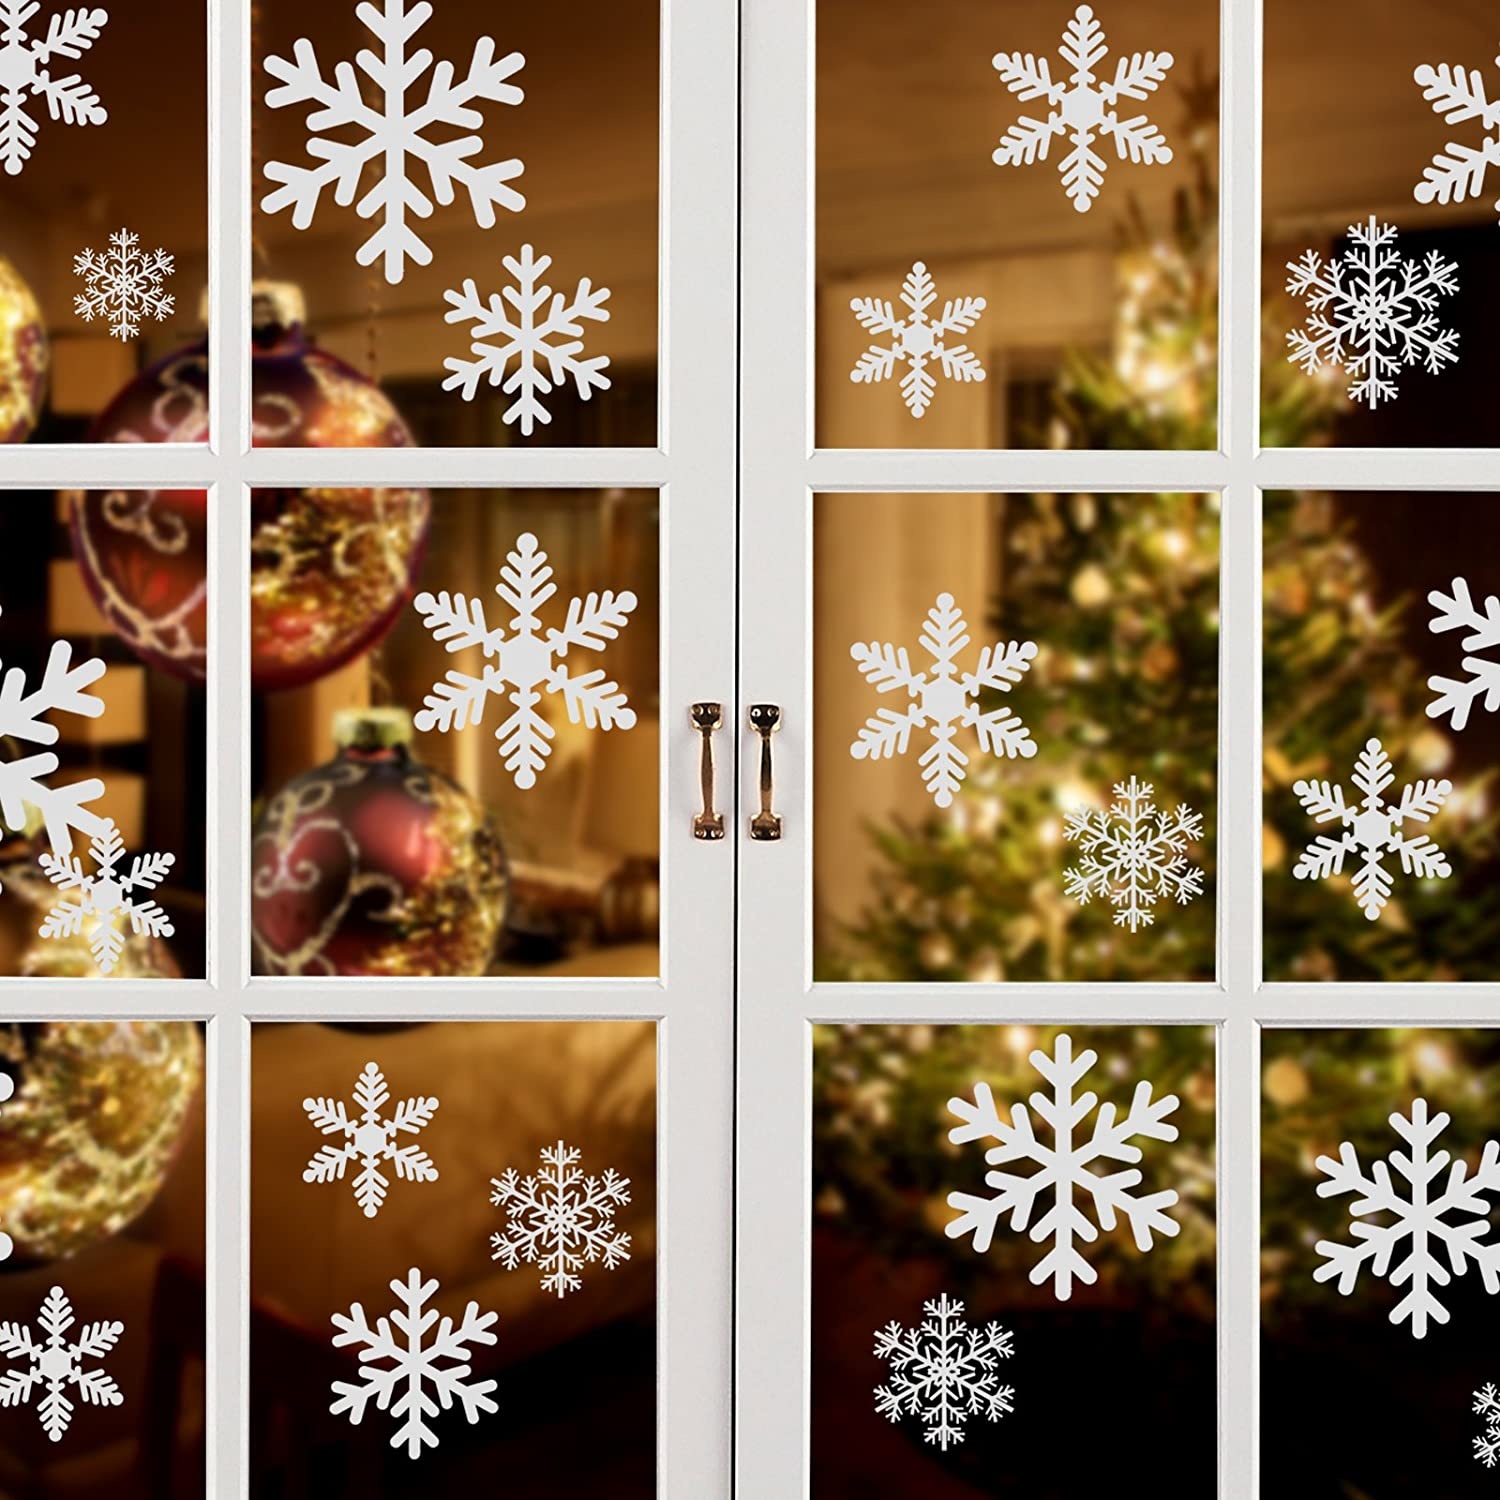 Naler Christmas Decoration Snowflake Window Clings Glueless PVC Wall Stickers for Windows Glasses, Pack of 85